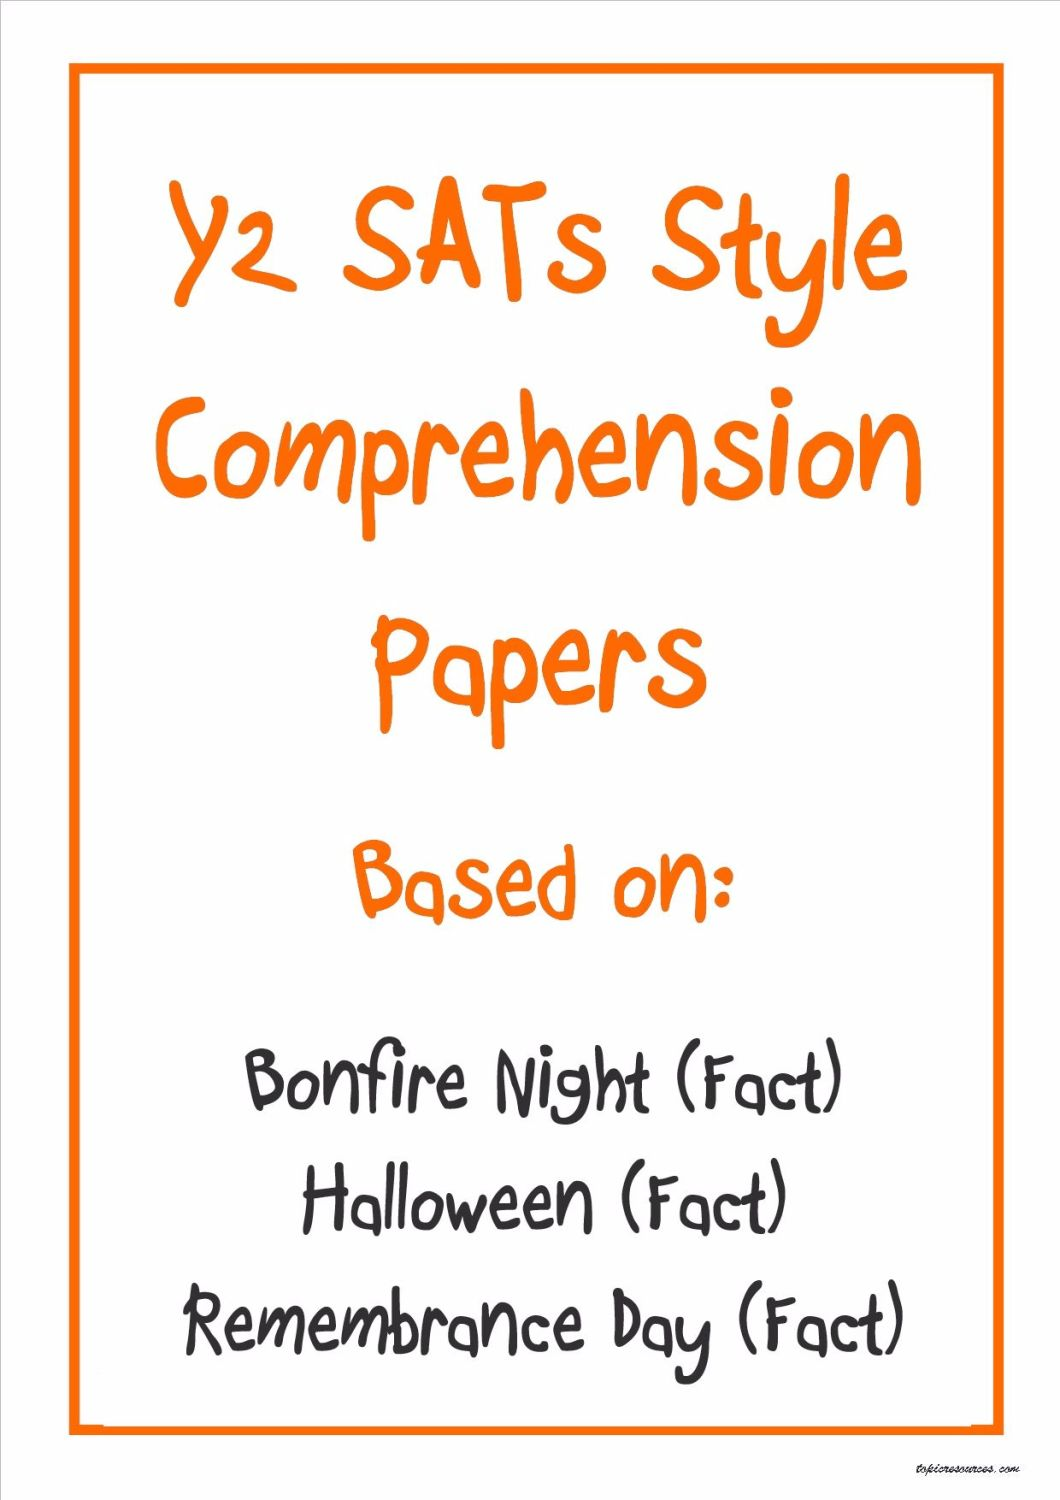 Non-fiction comprehension papers based on Bonfire Night, Halloween and Reme